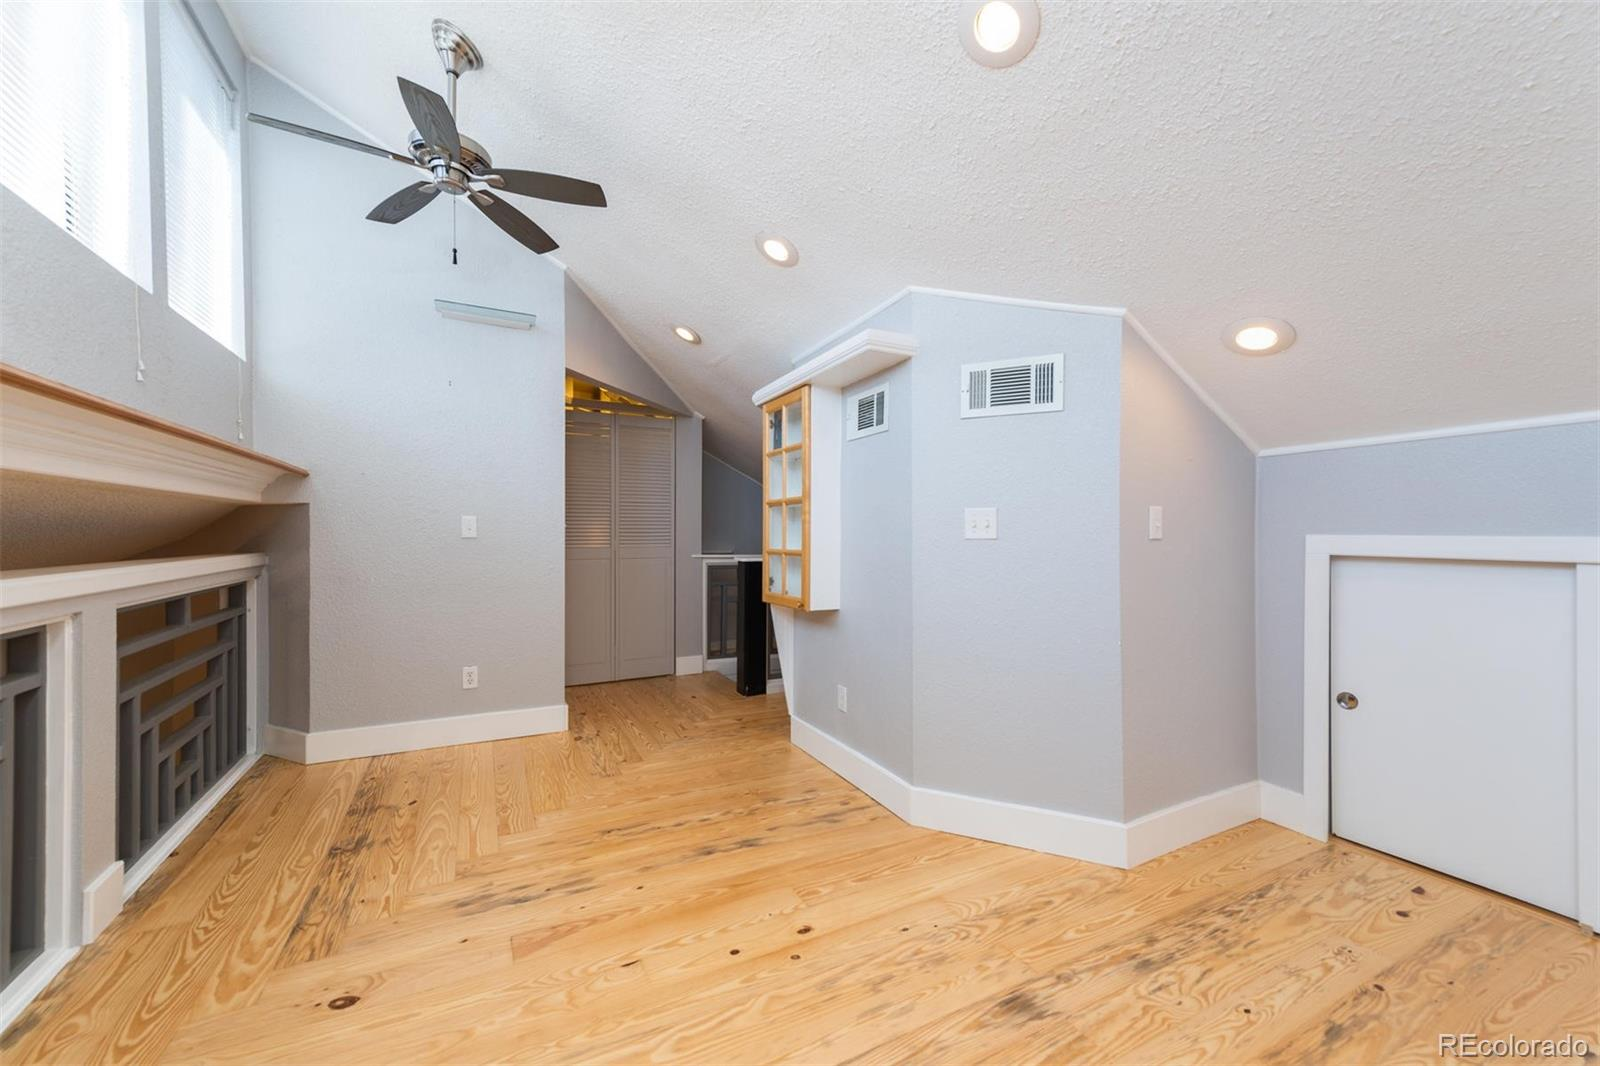 MLS# 9142860 - 15 - 12354 W Nevada Place #303, Lakewood, CO 80228